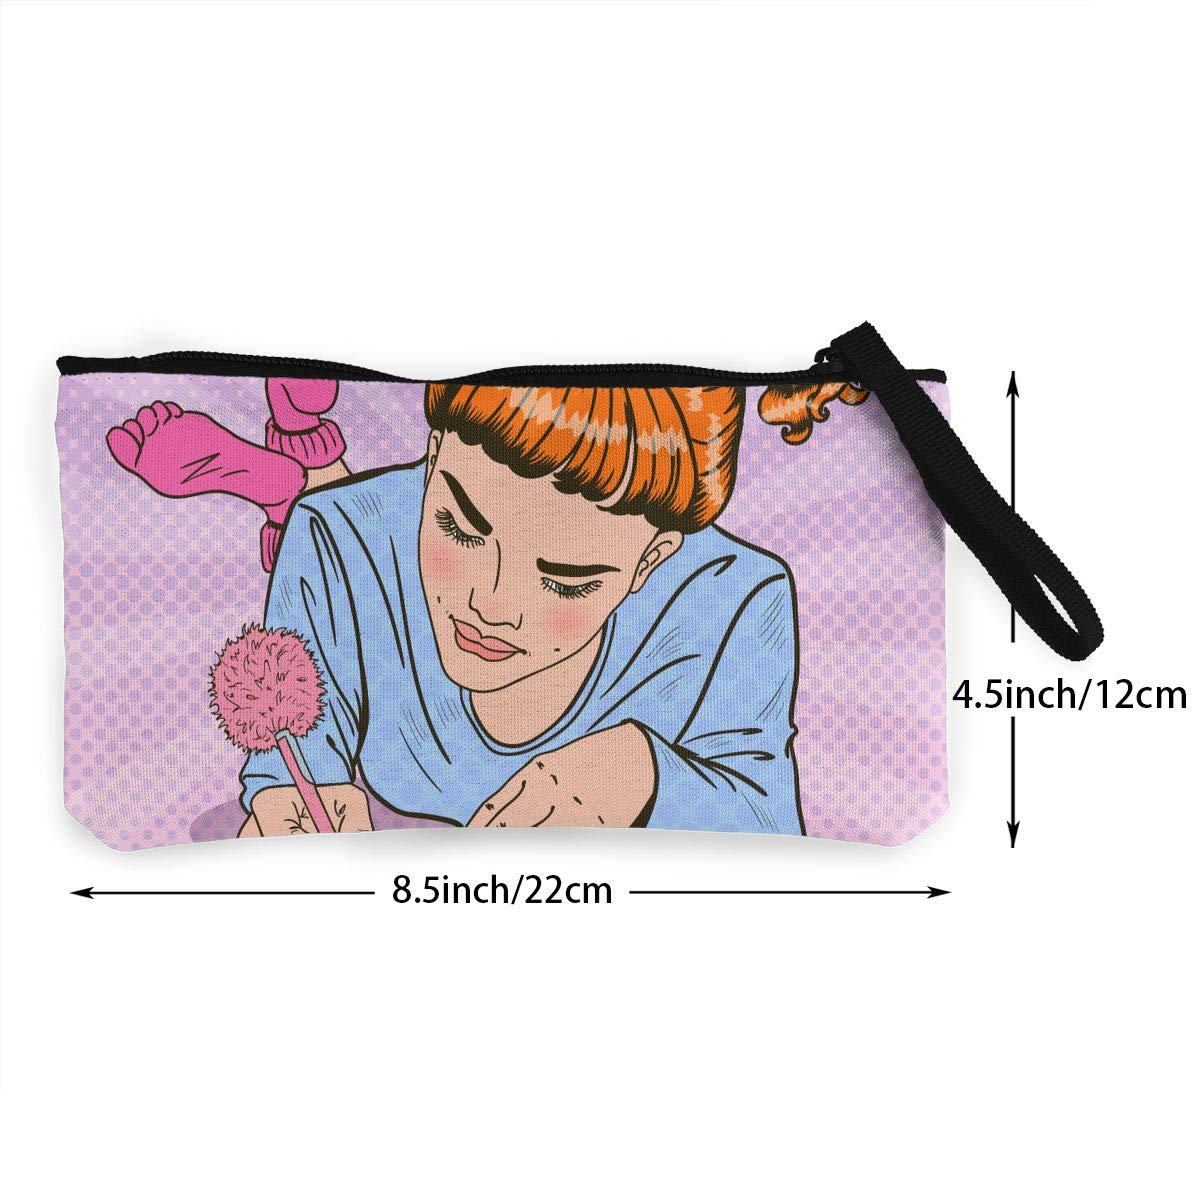 Yamini A Girl in Pink Socks Who Keeps A Diary Cute Looking Coin Purse Small and Exquisite Going Out to Carry Purse